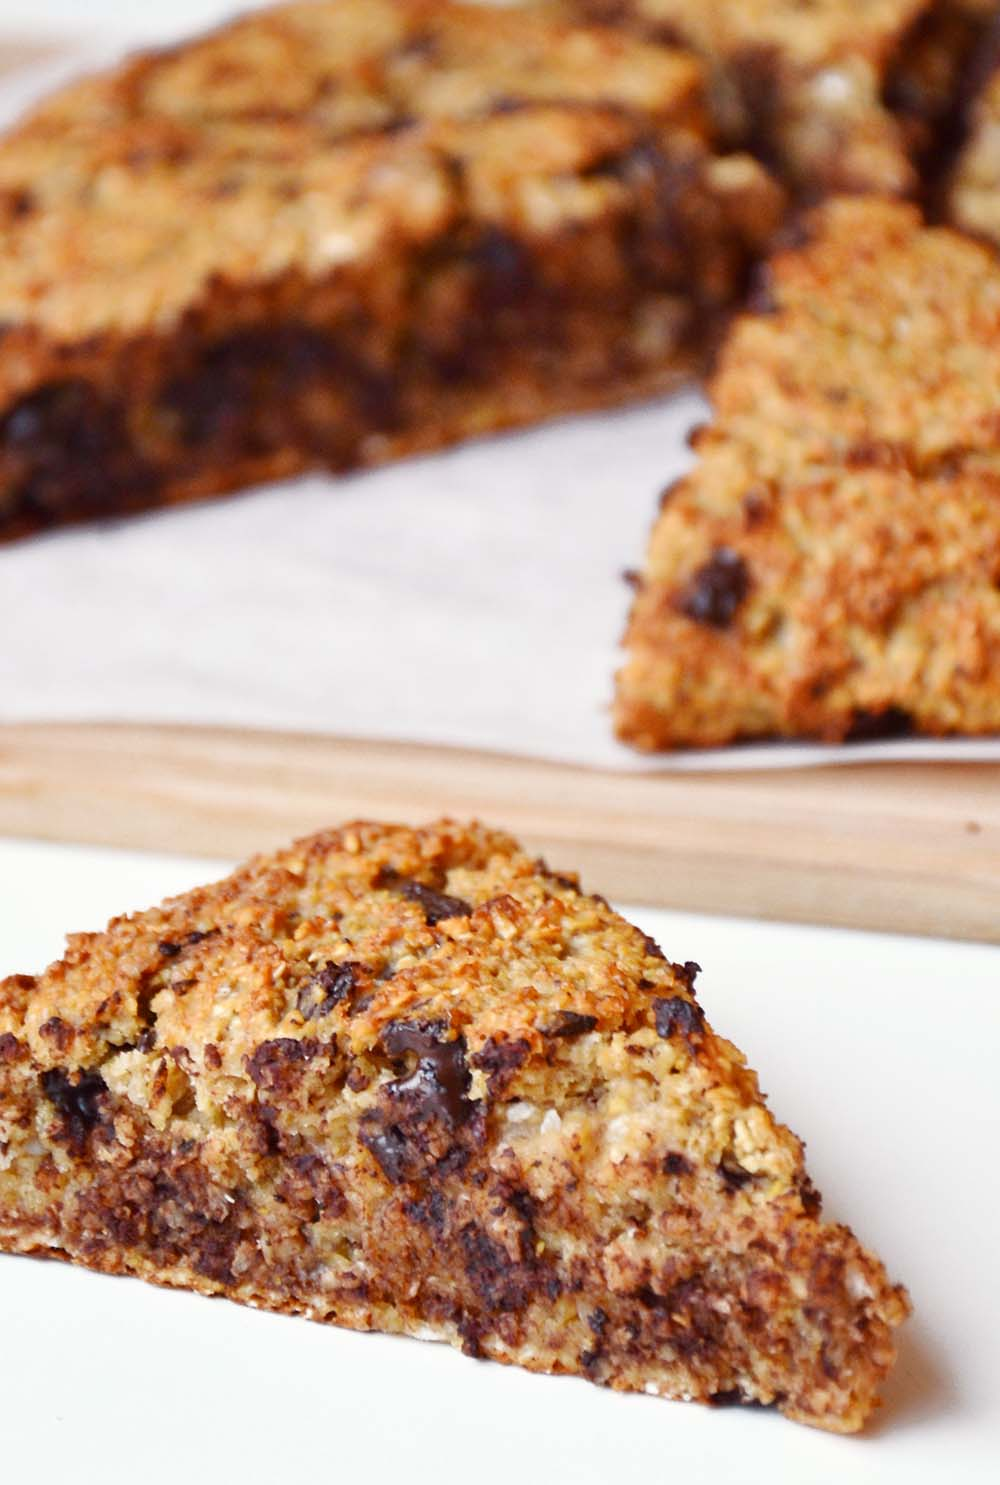 Oatmeal chocolate scones